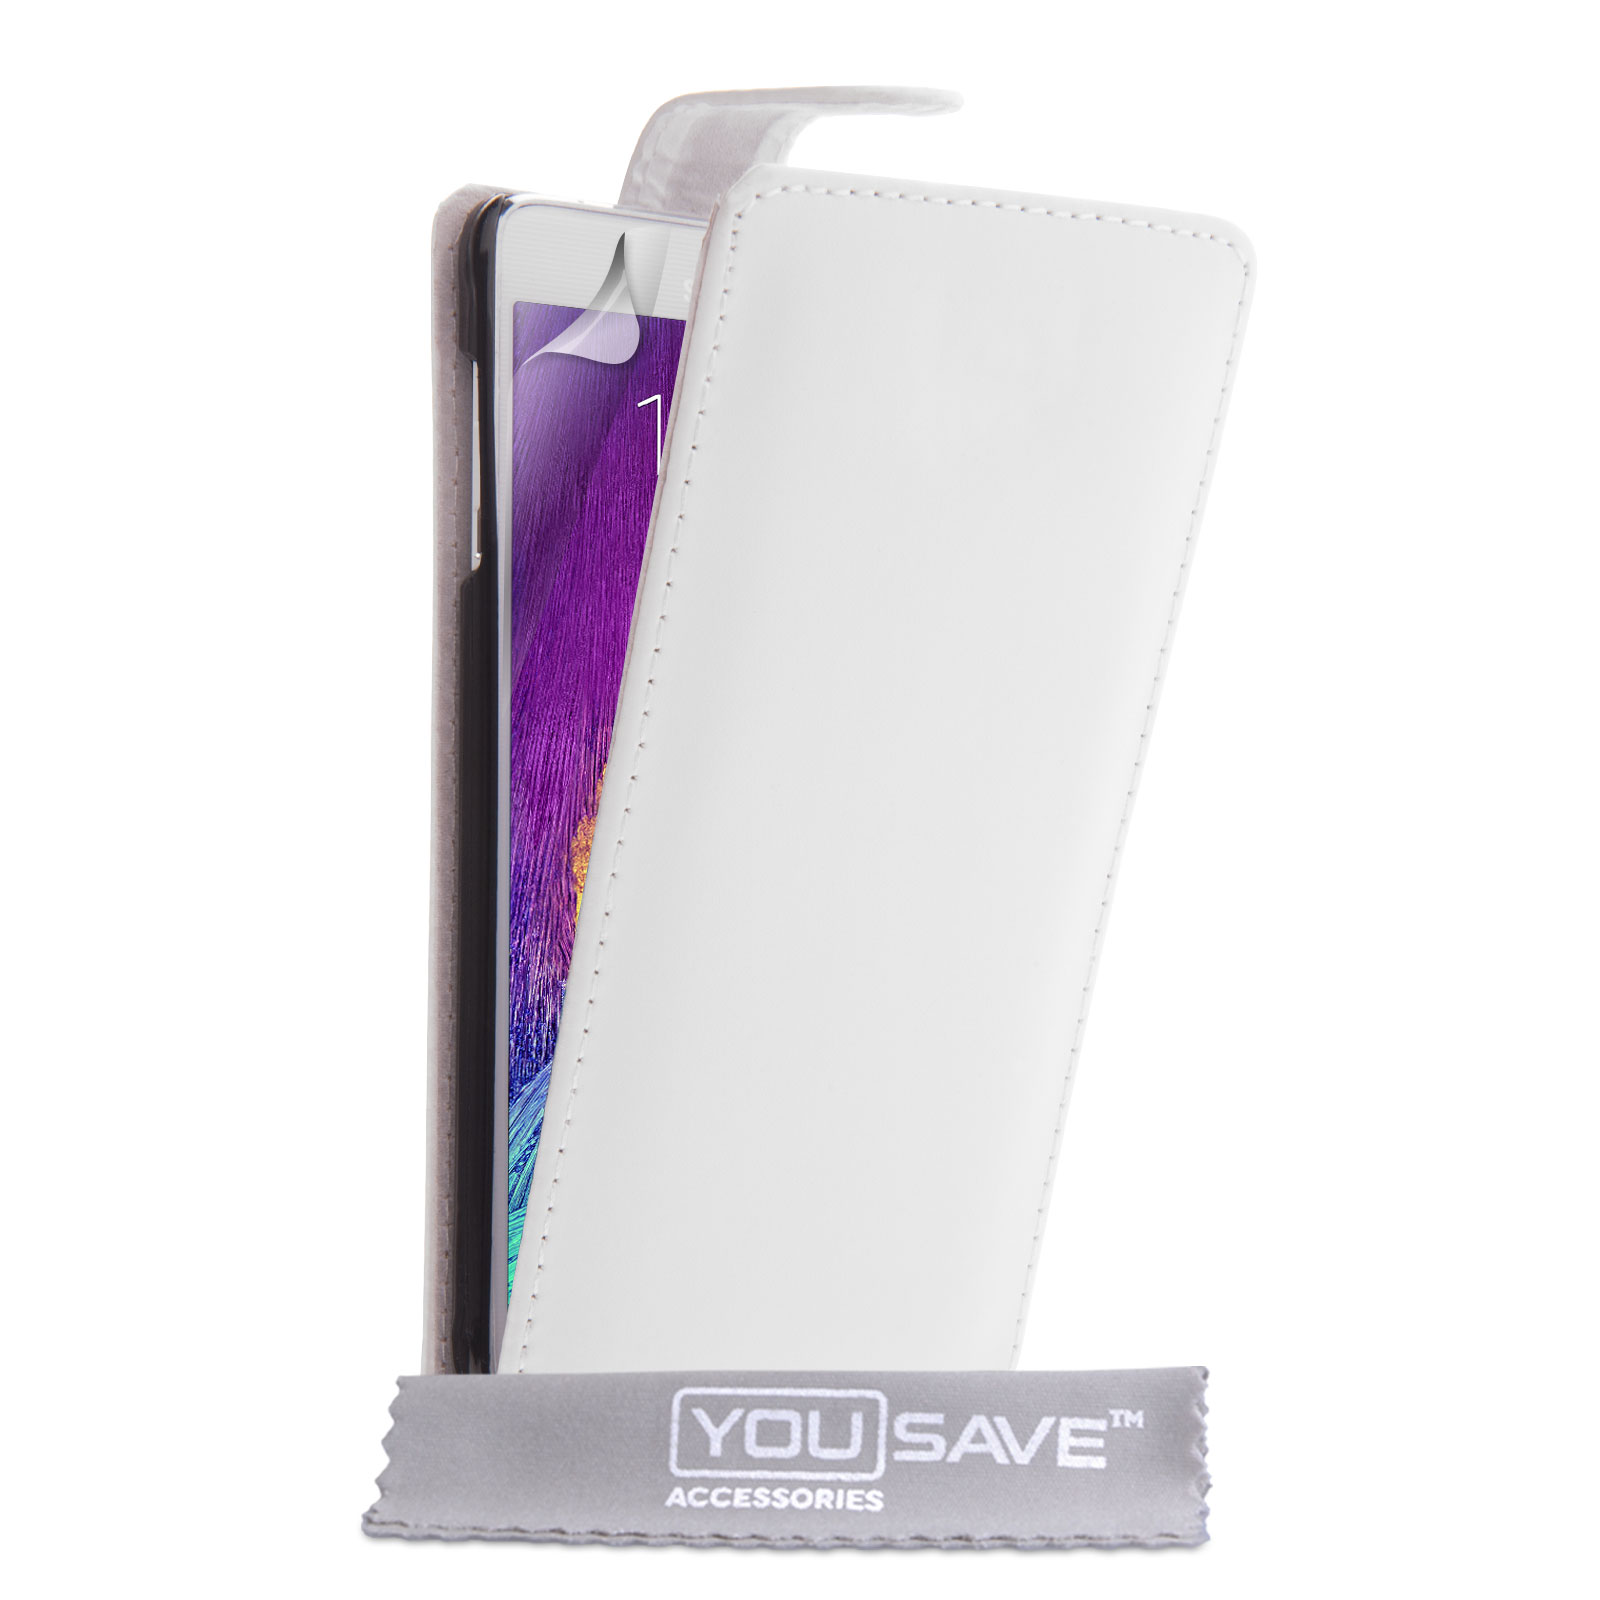 YouSave Samsung Galaxy Note 4 Leather-Effect Flip Case - White